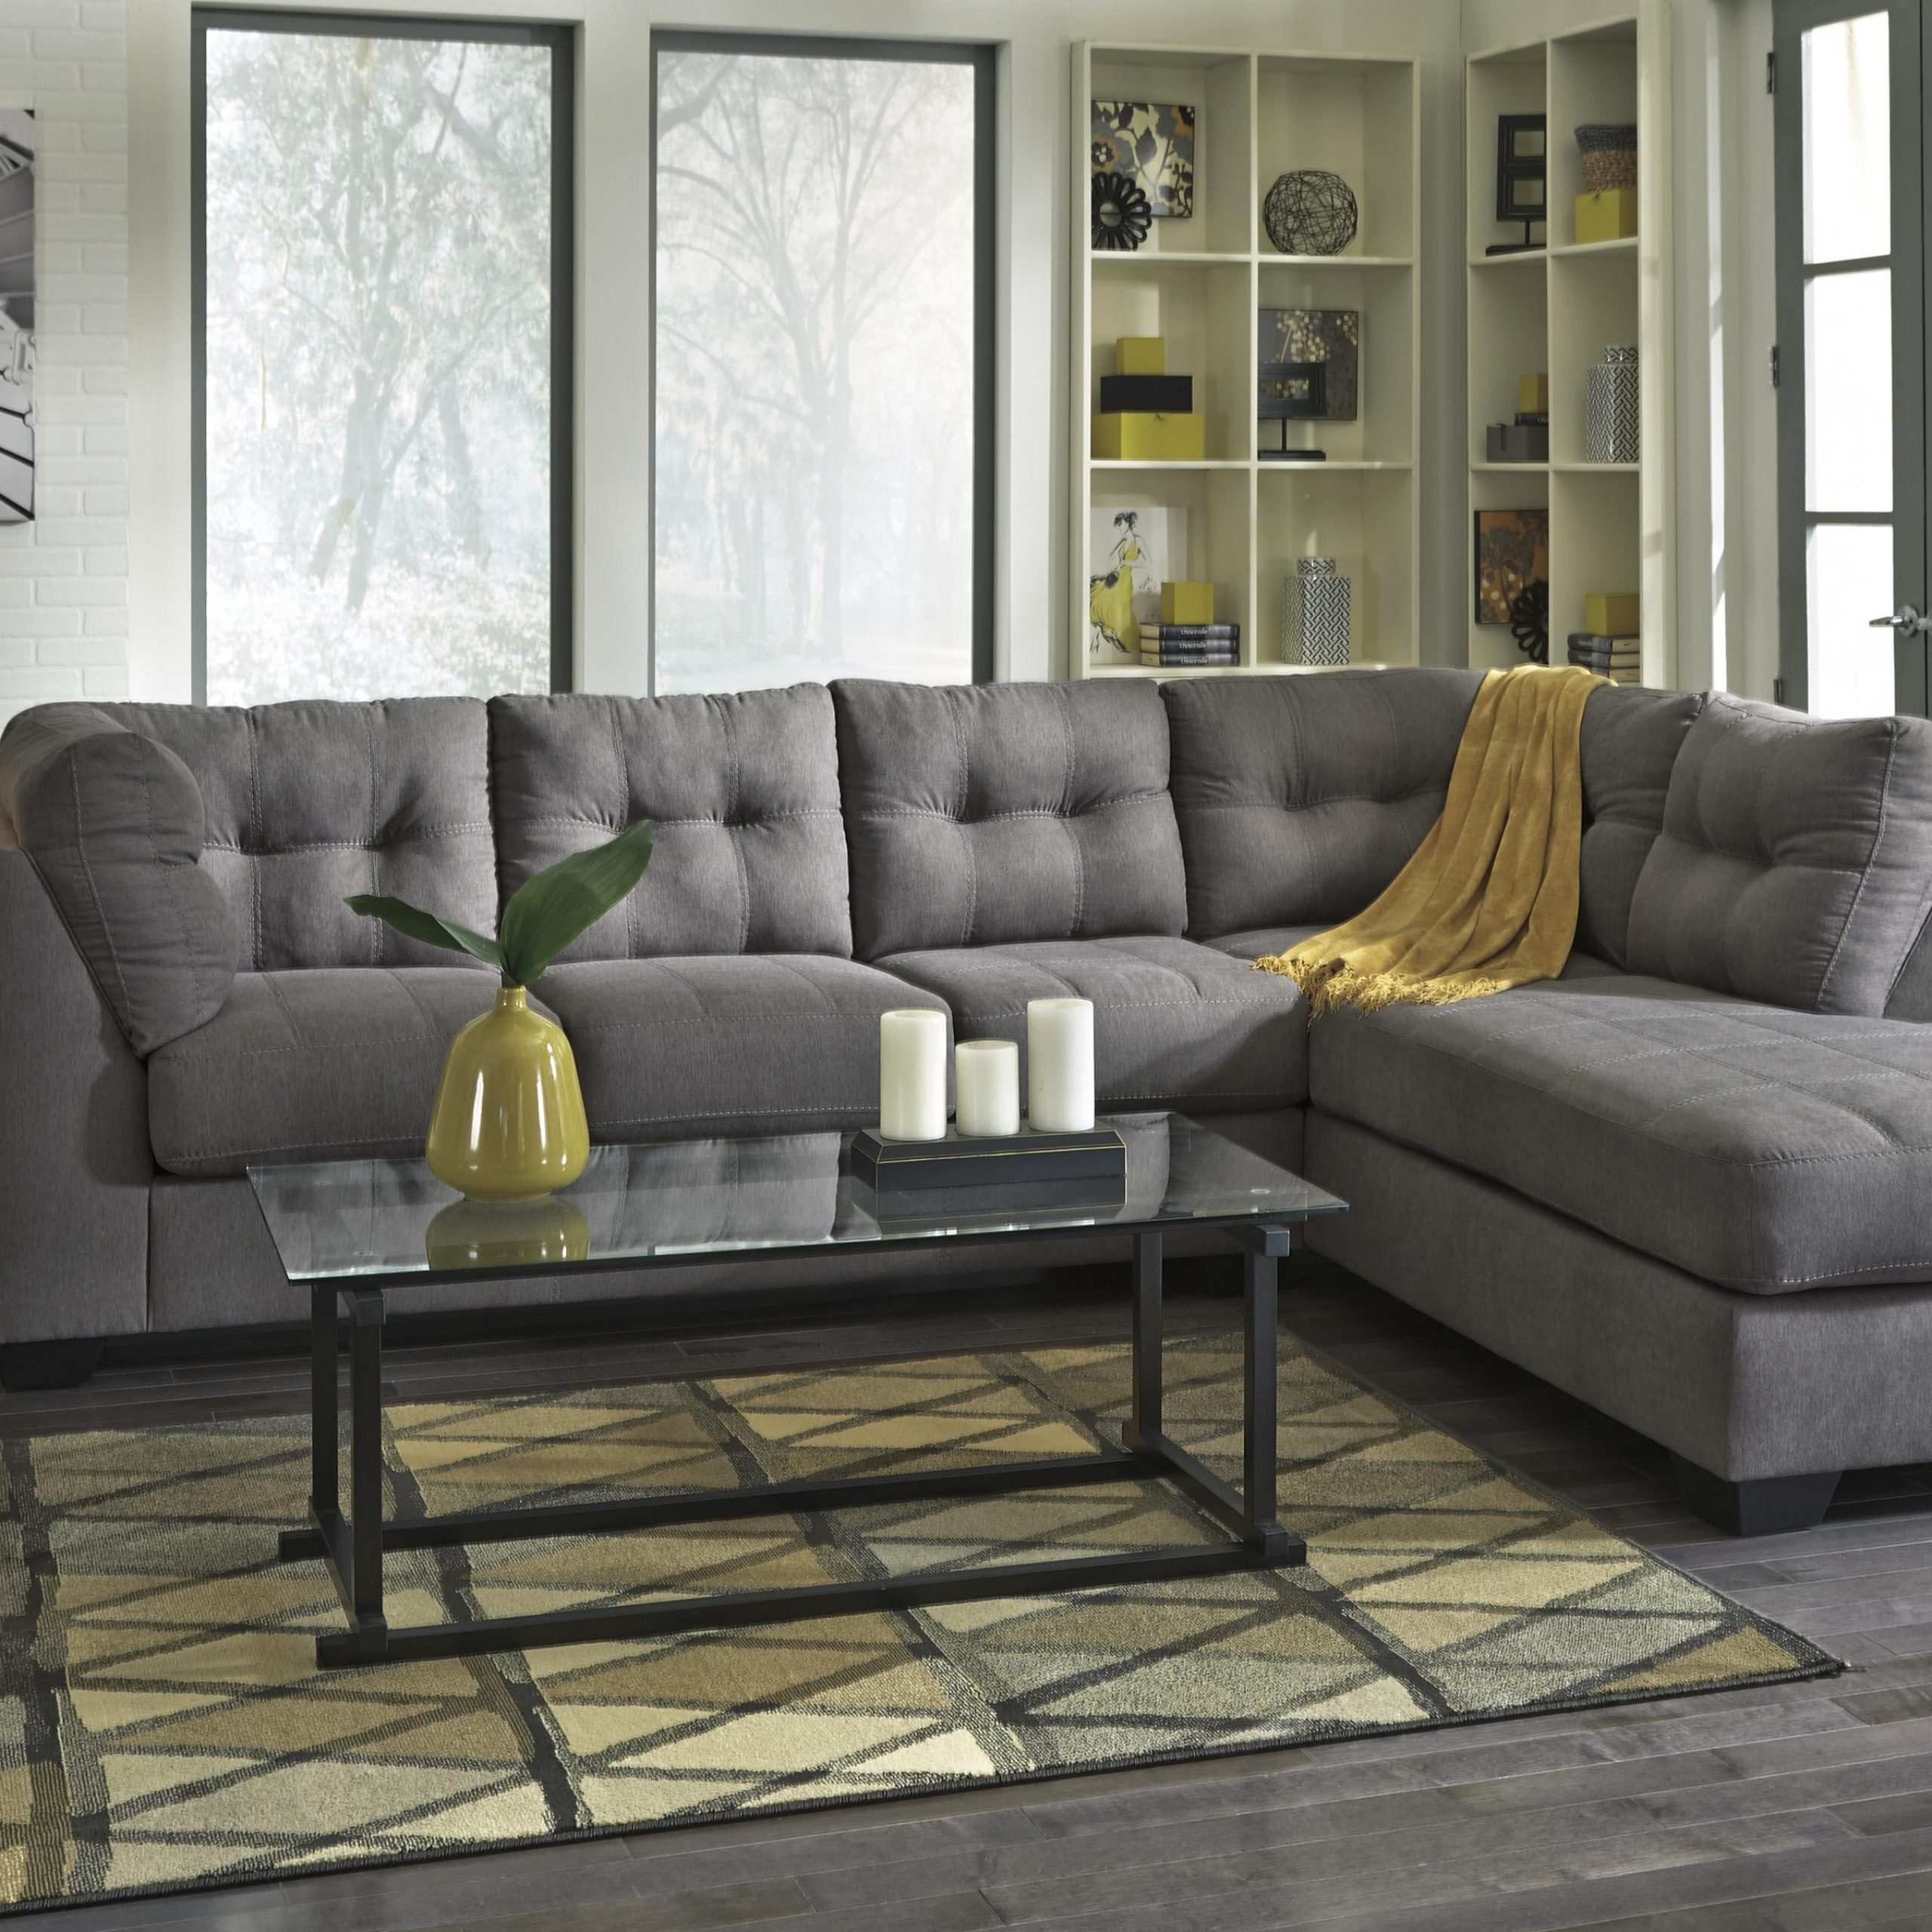 2 Piece Sectional W/ Sleeper Sofa & Right Chaise With Regard To Aspen 2 Piece Sleeper Sectionals With Laf Chaise (View 2 of 15)